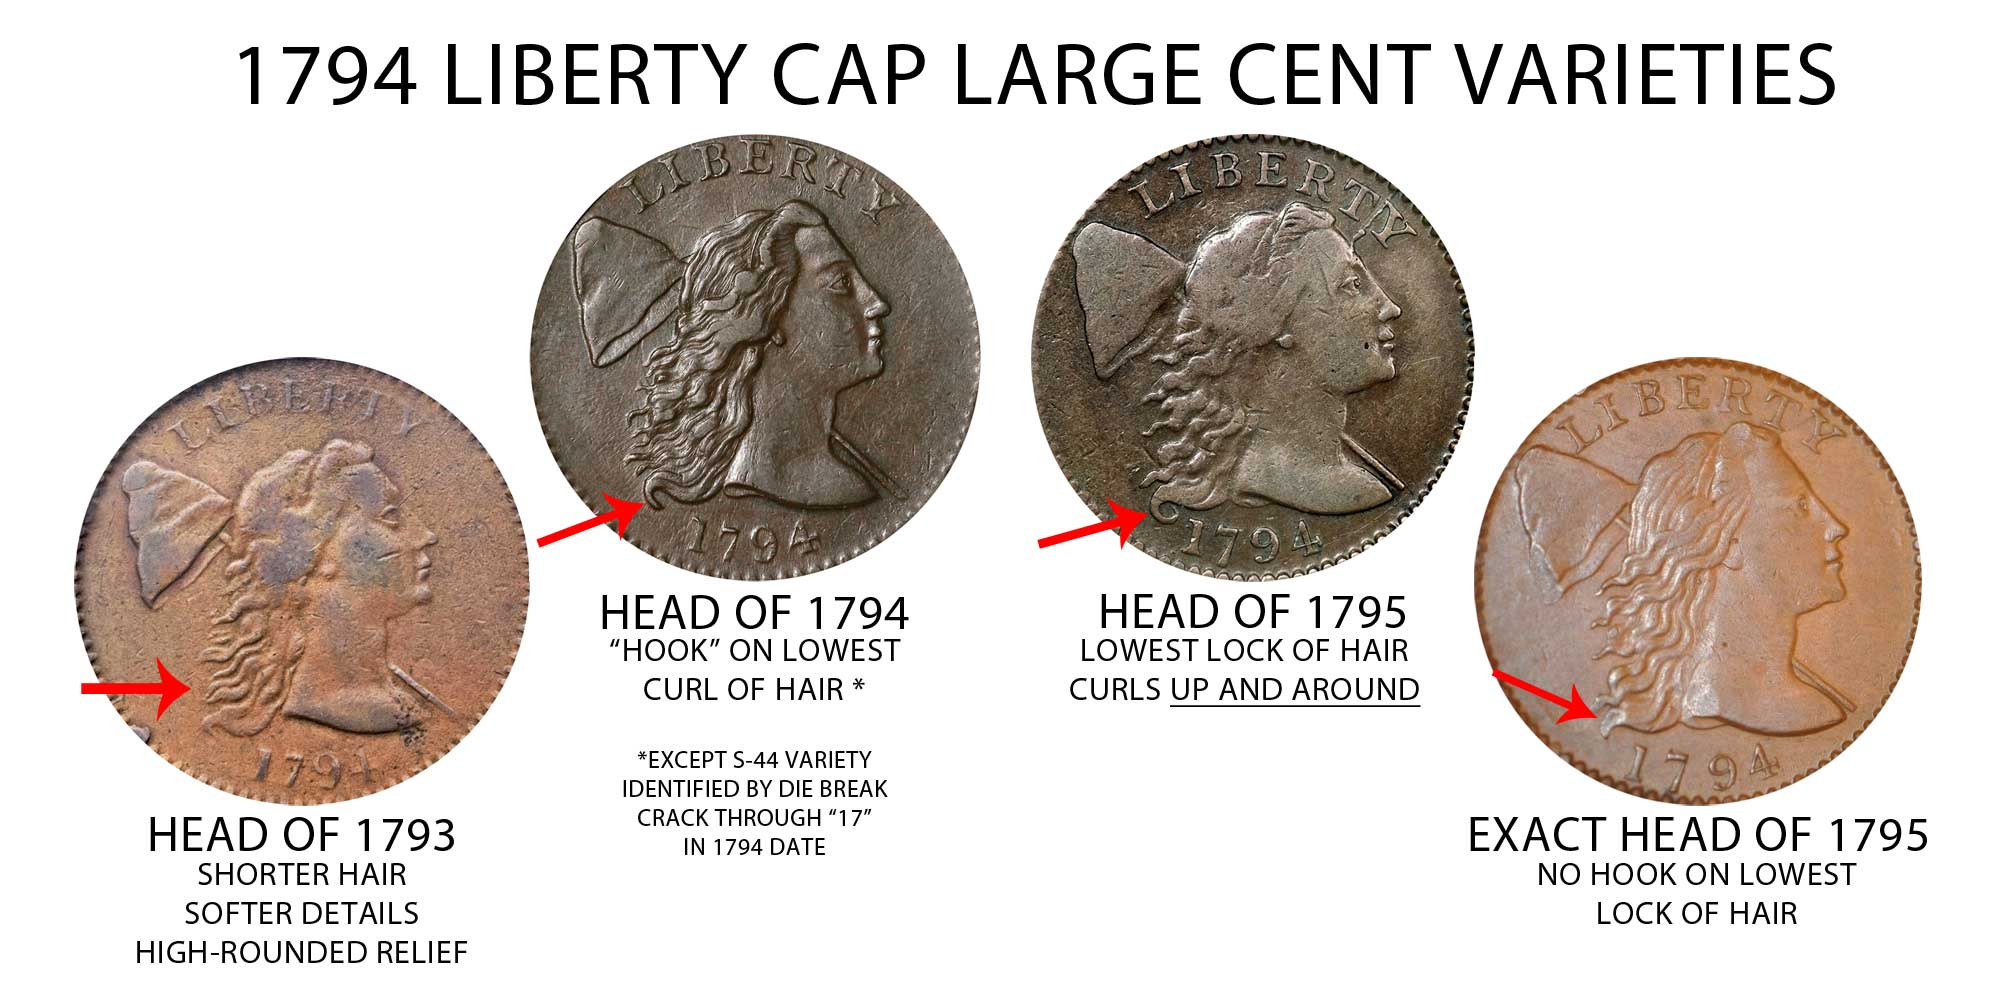 1794 Liberty Cap Large Cent Head of 1794 Early Copper Penny